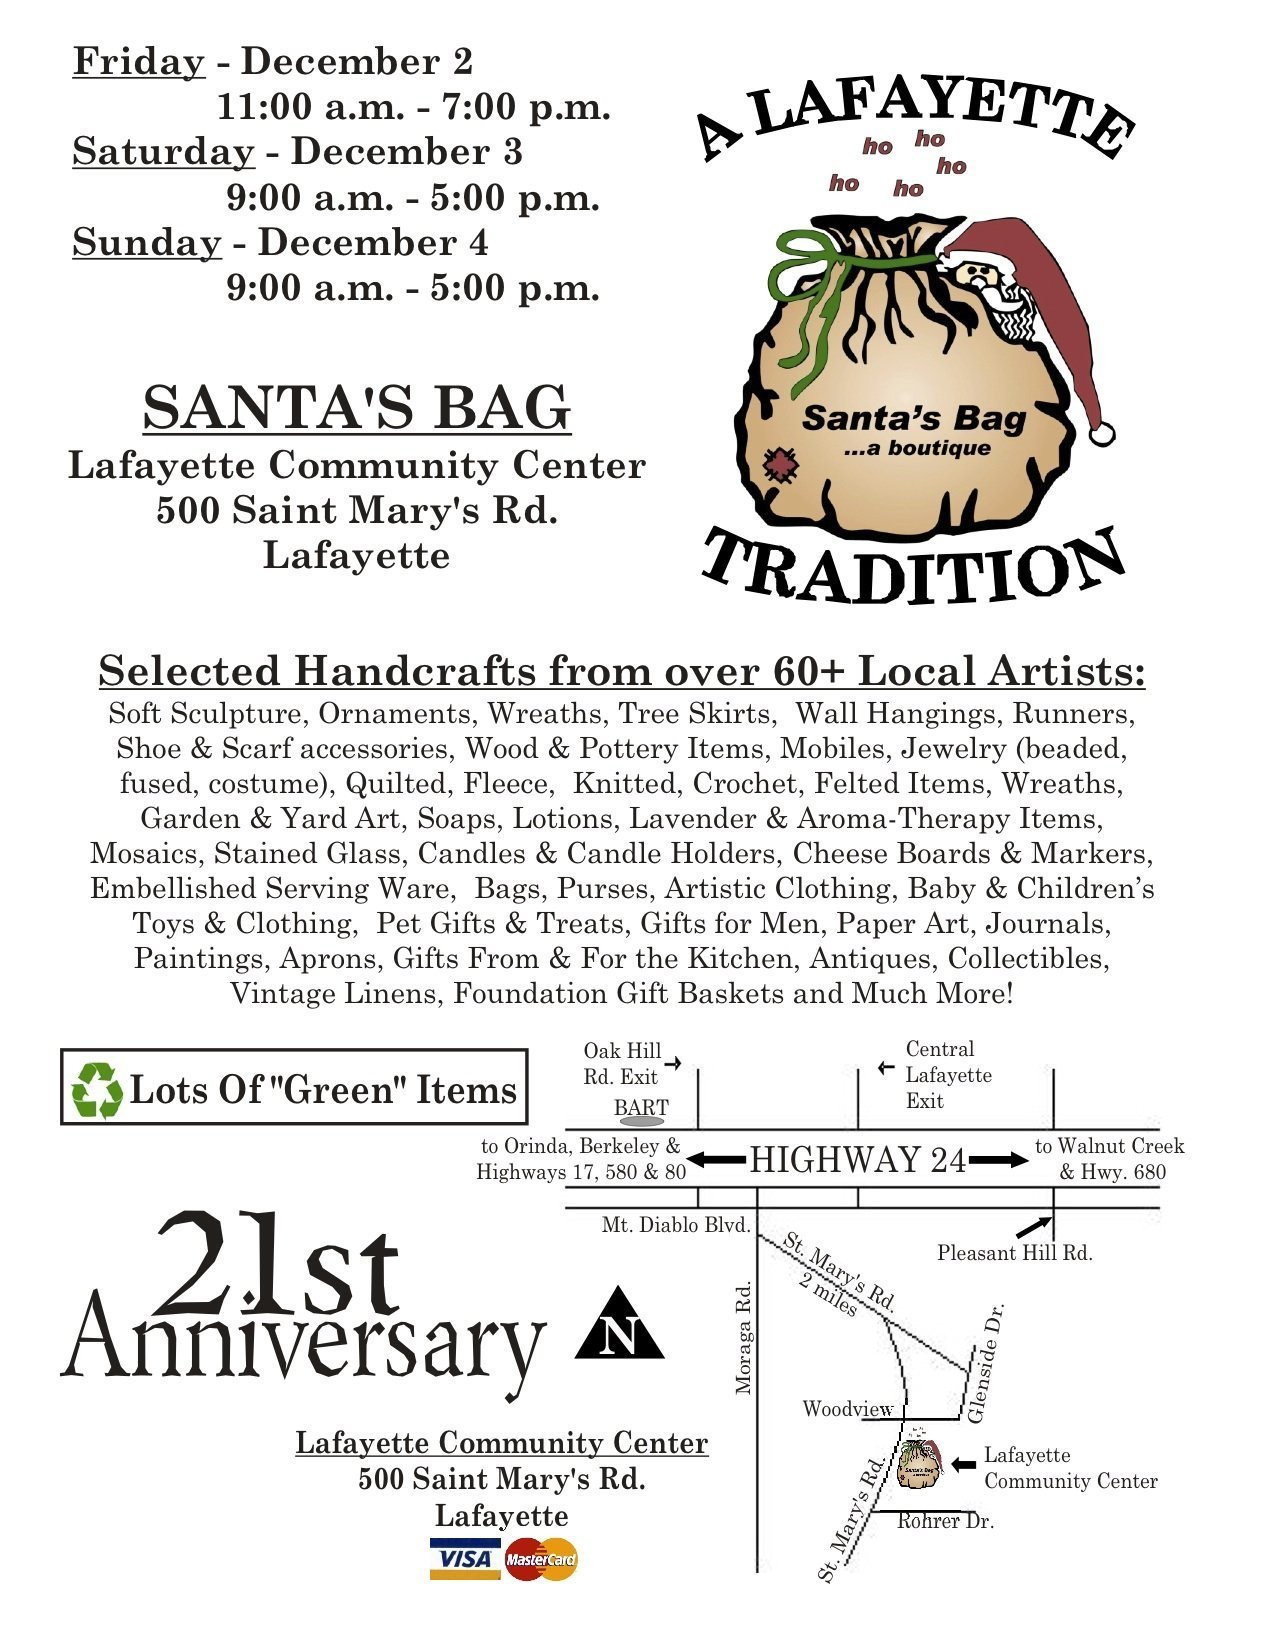 2011 Email Flyer for Lafayette Santa's Bag